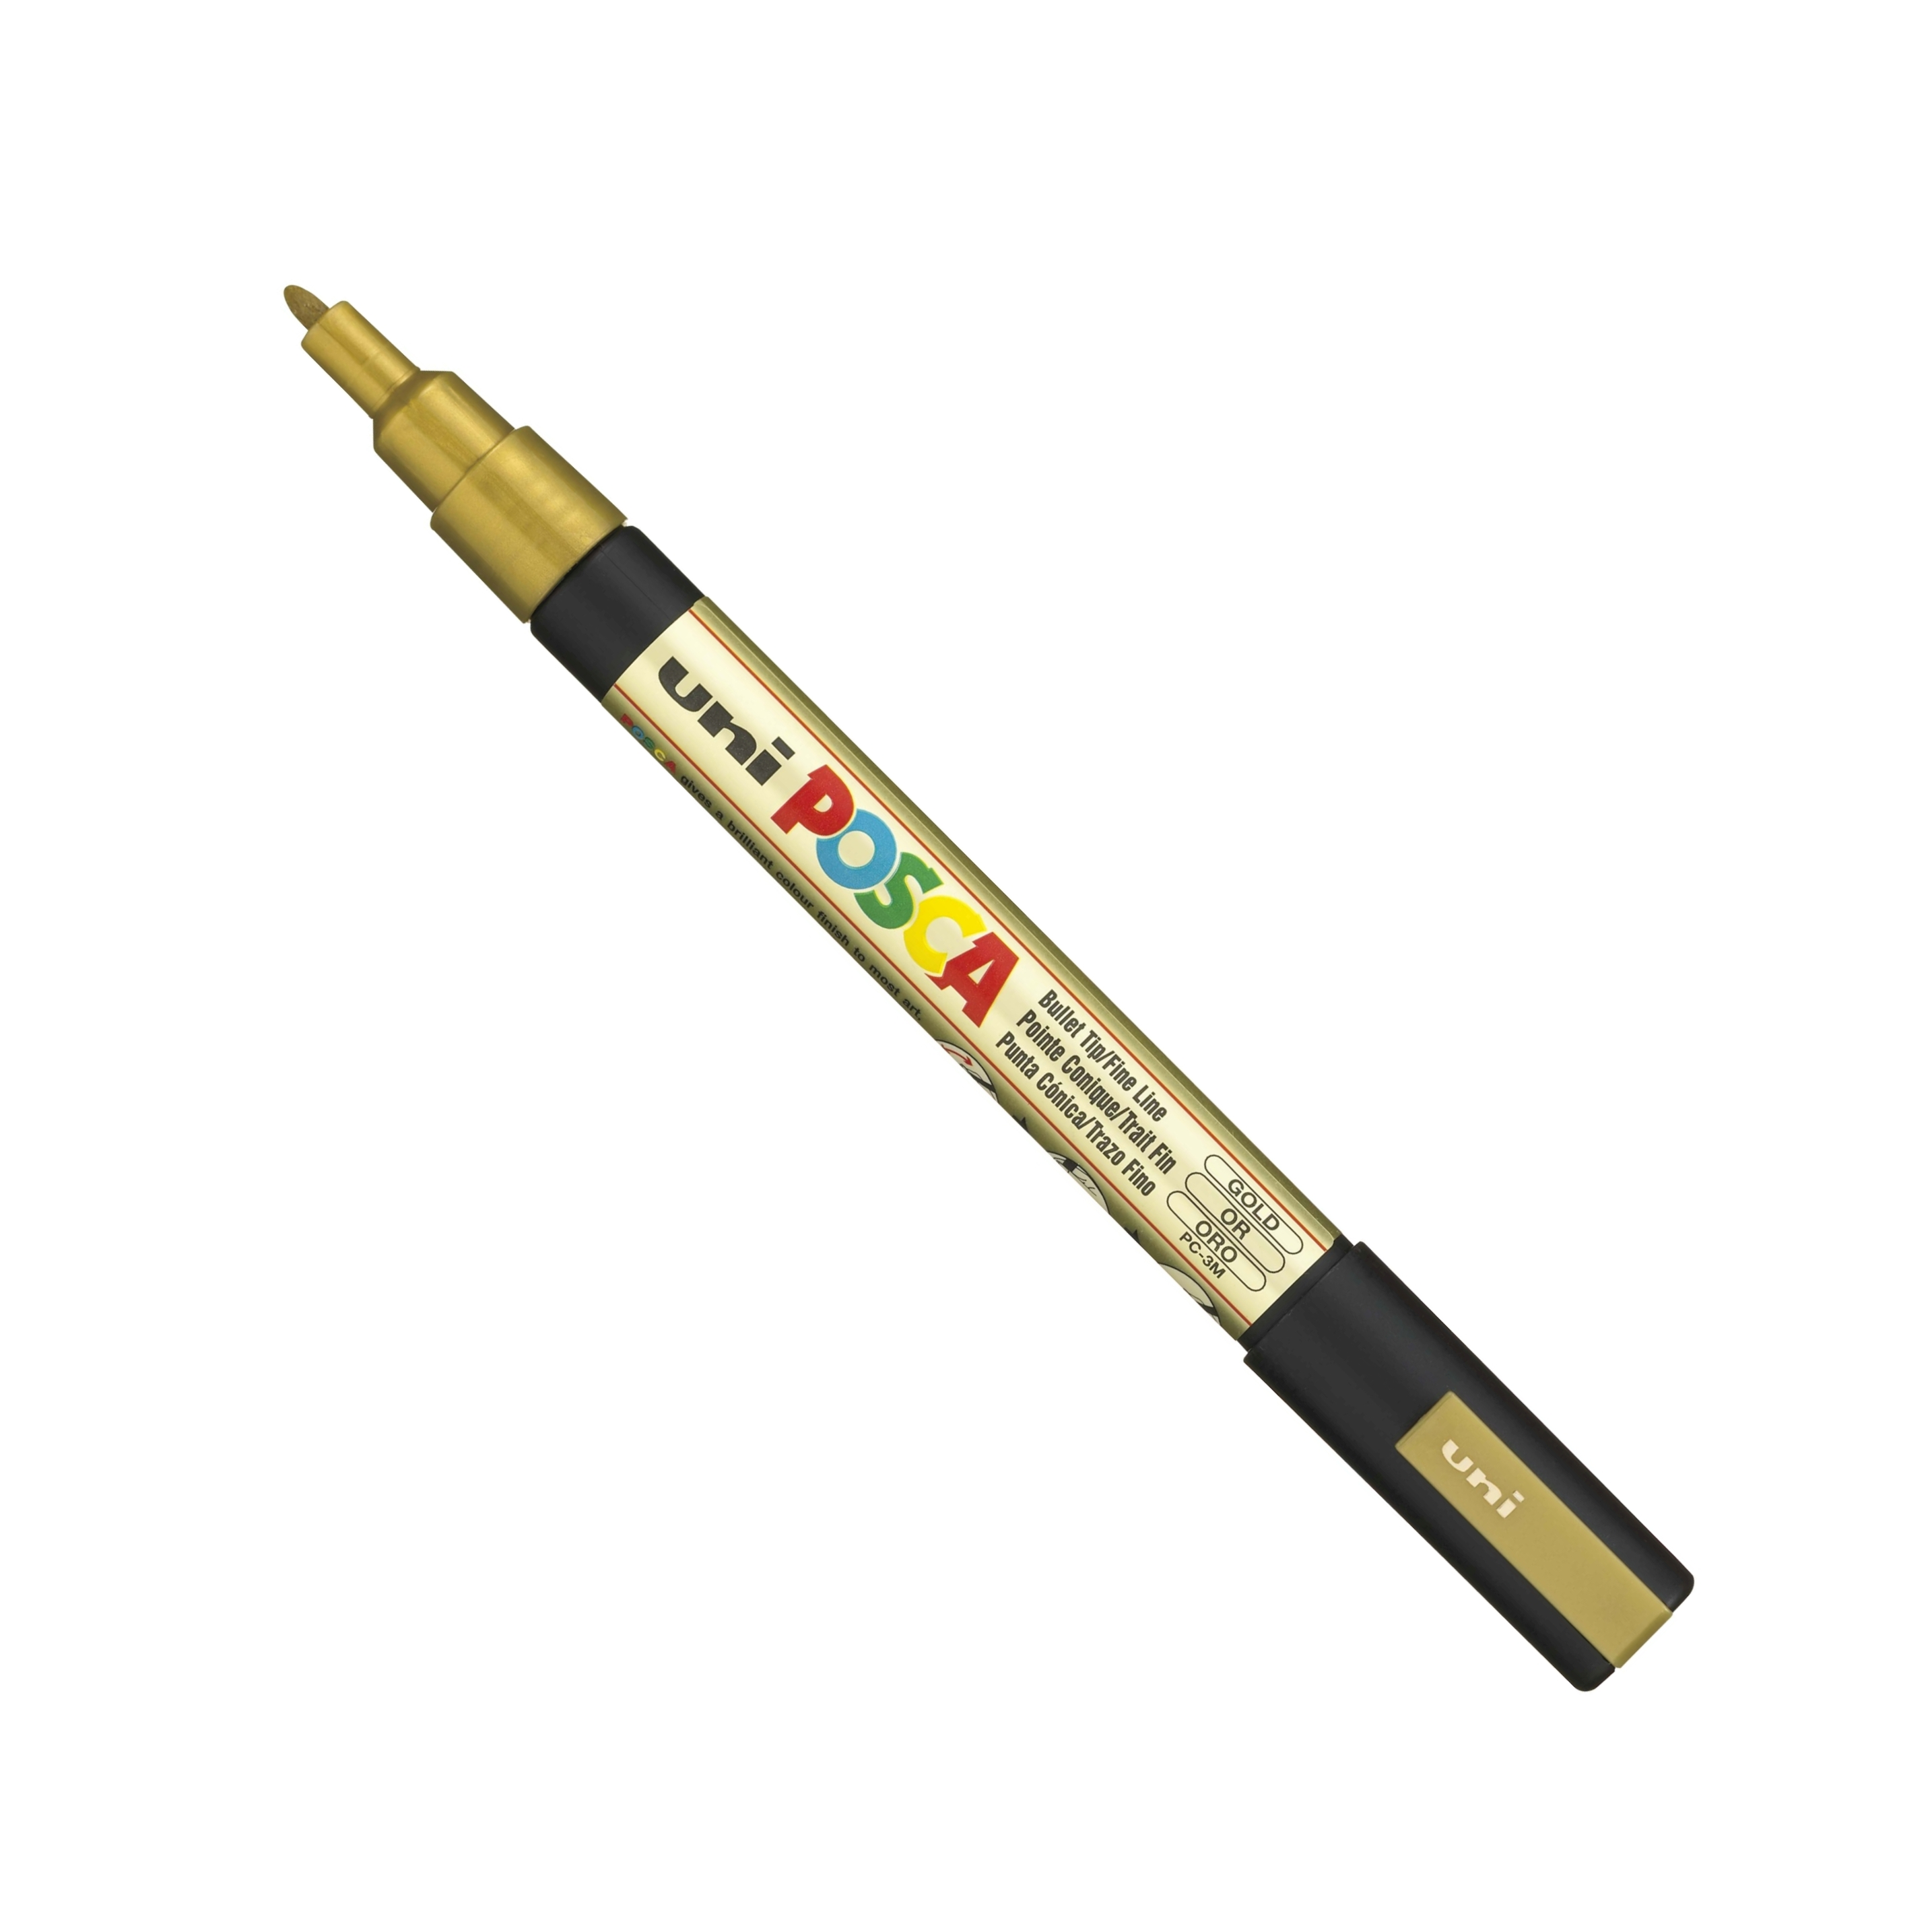 Posca PC-3M Marker Fine Gold Single Pen